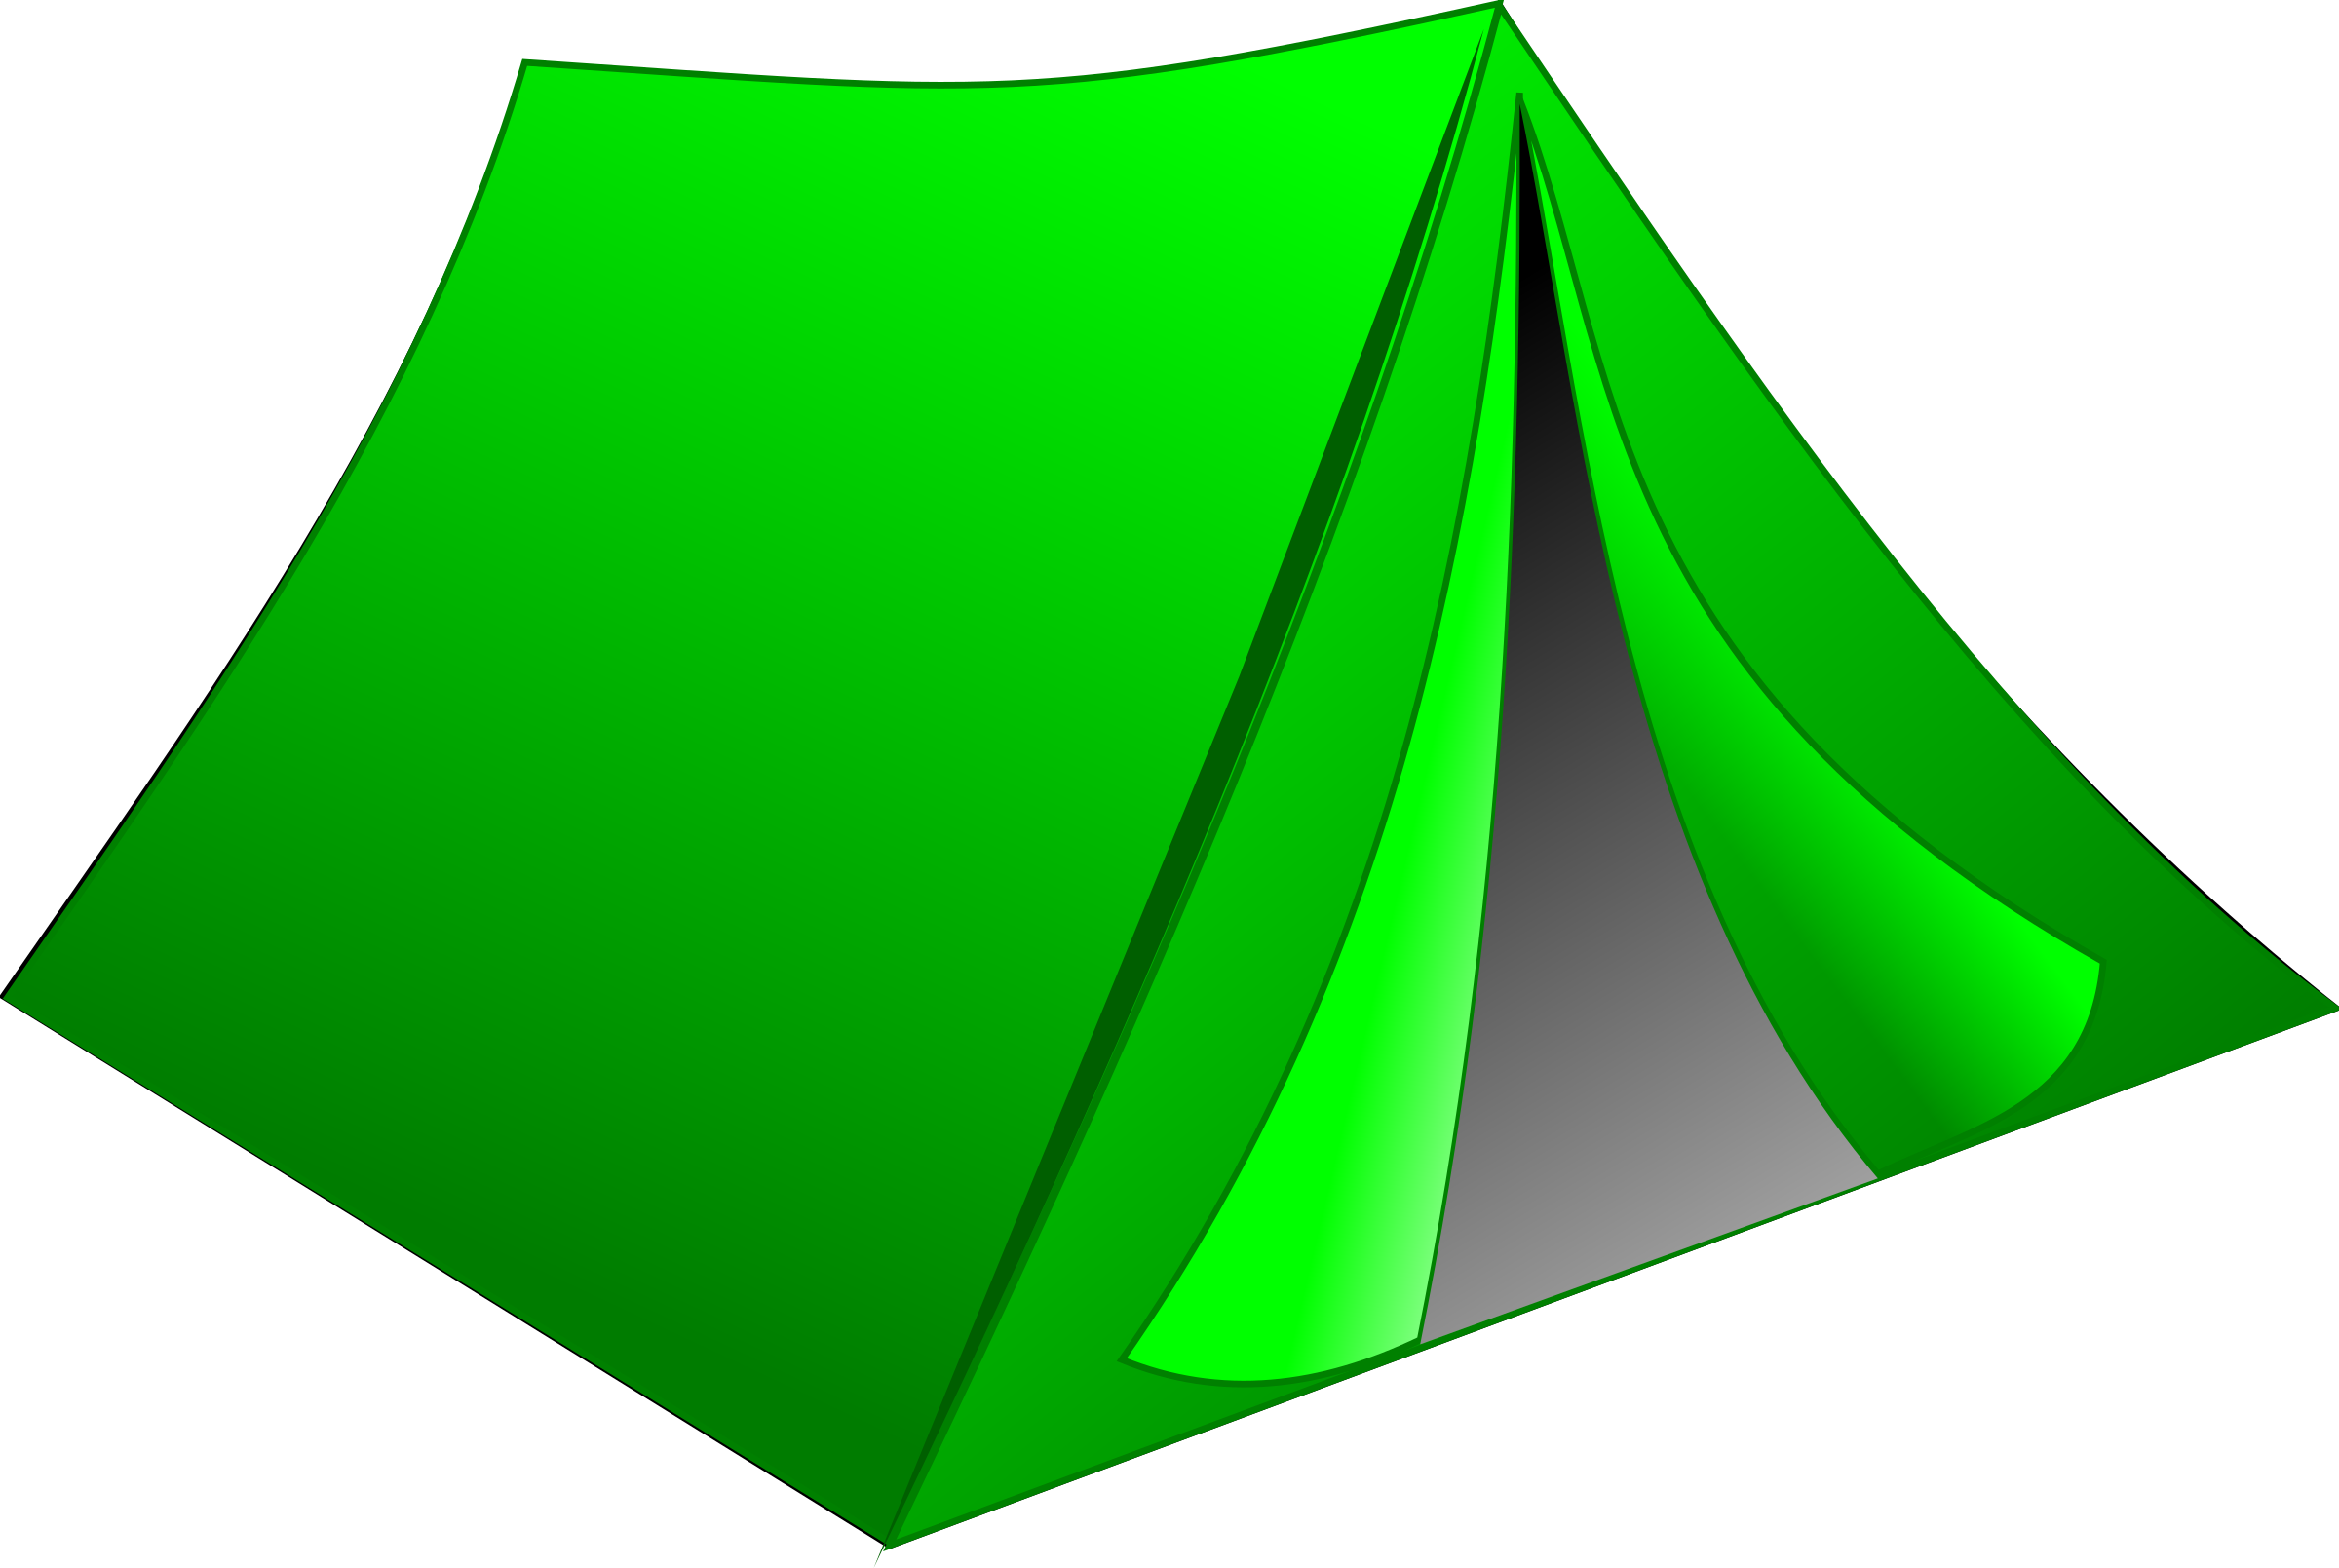 Vector canopy clipart free image transparent download Tent Image | Free download best Tent Image on ClipArtMag.com image transparent download